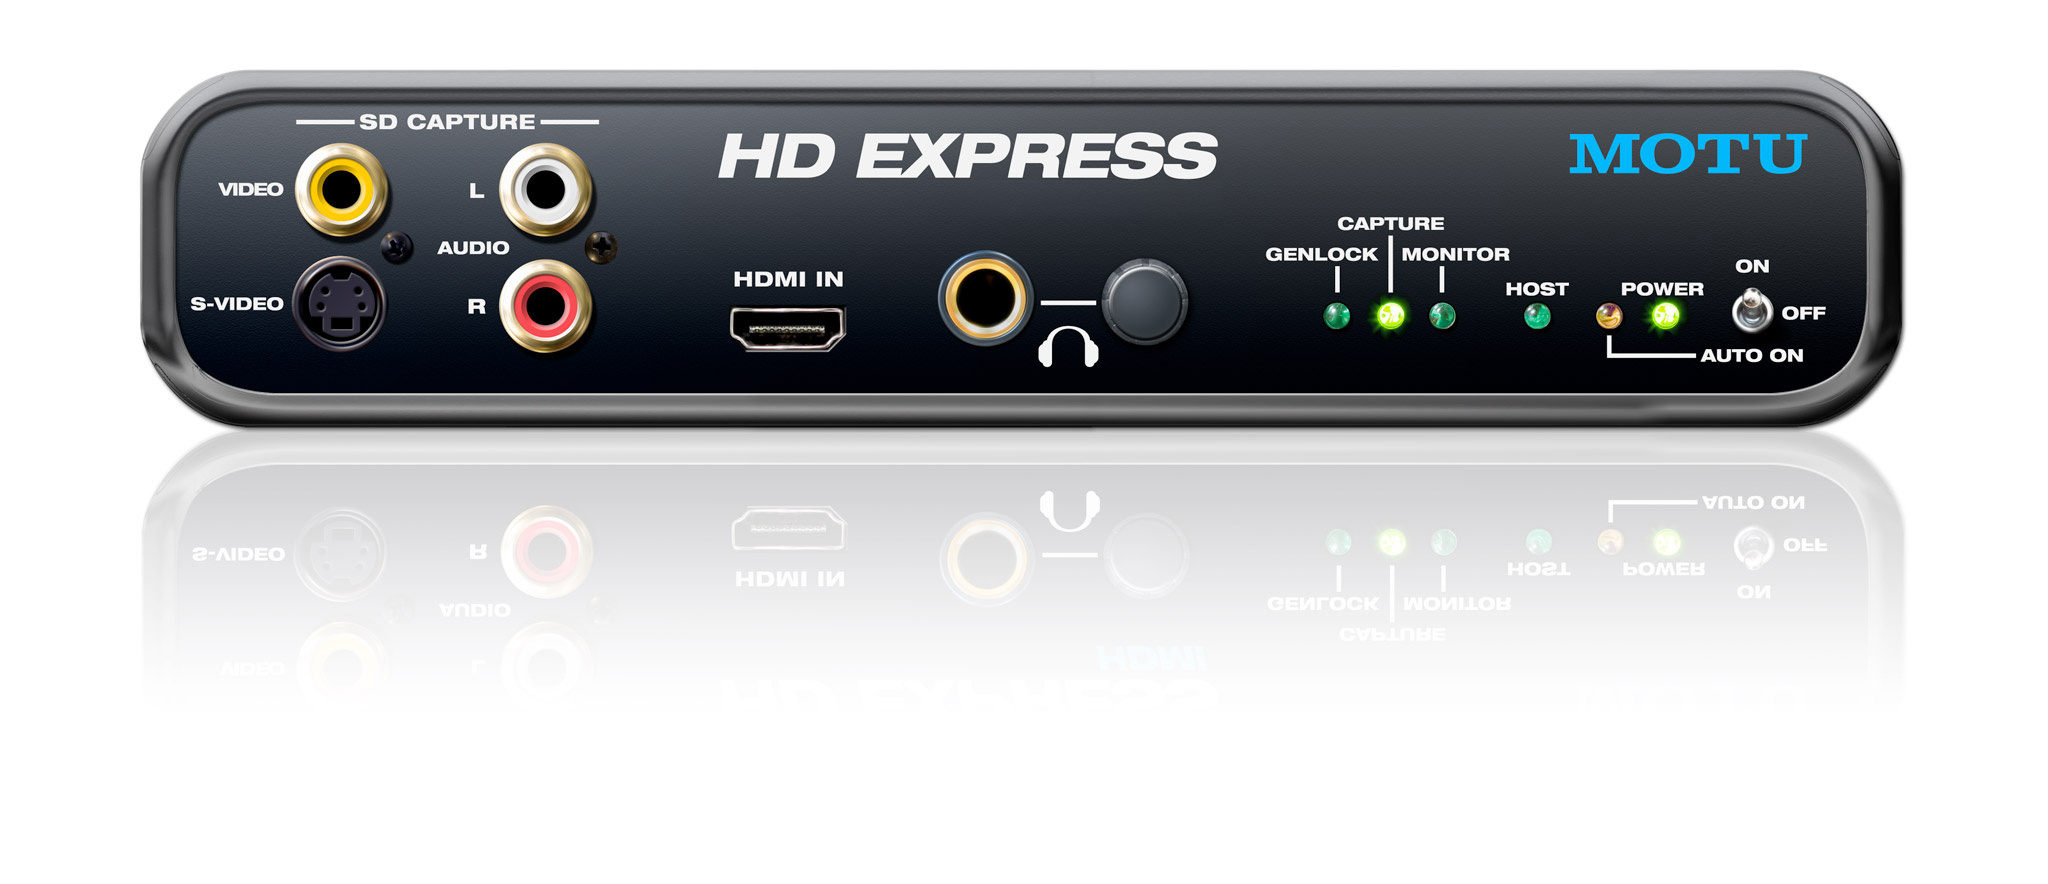 Hd express overview Hd video hd video hd video hd video